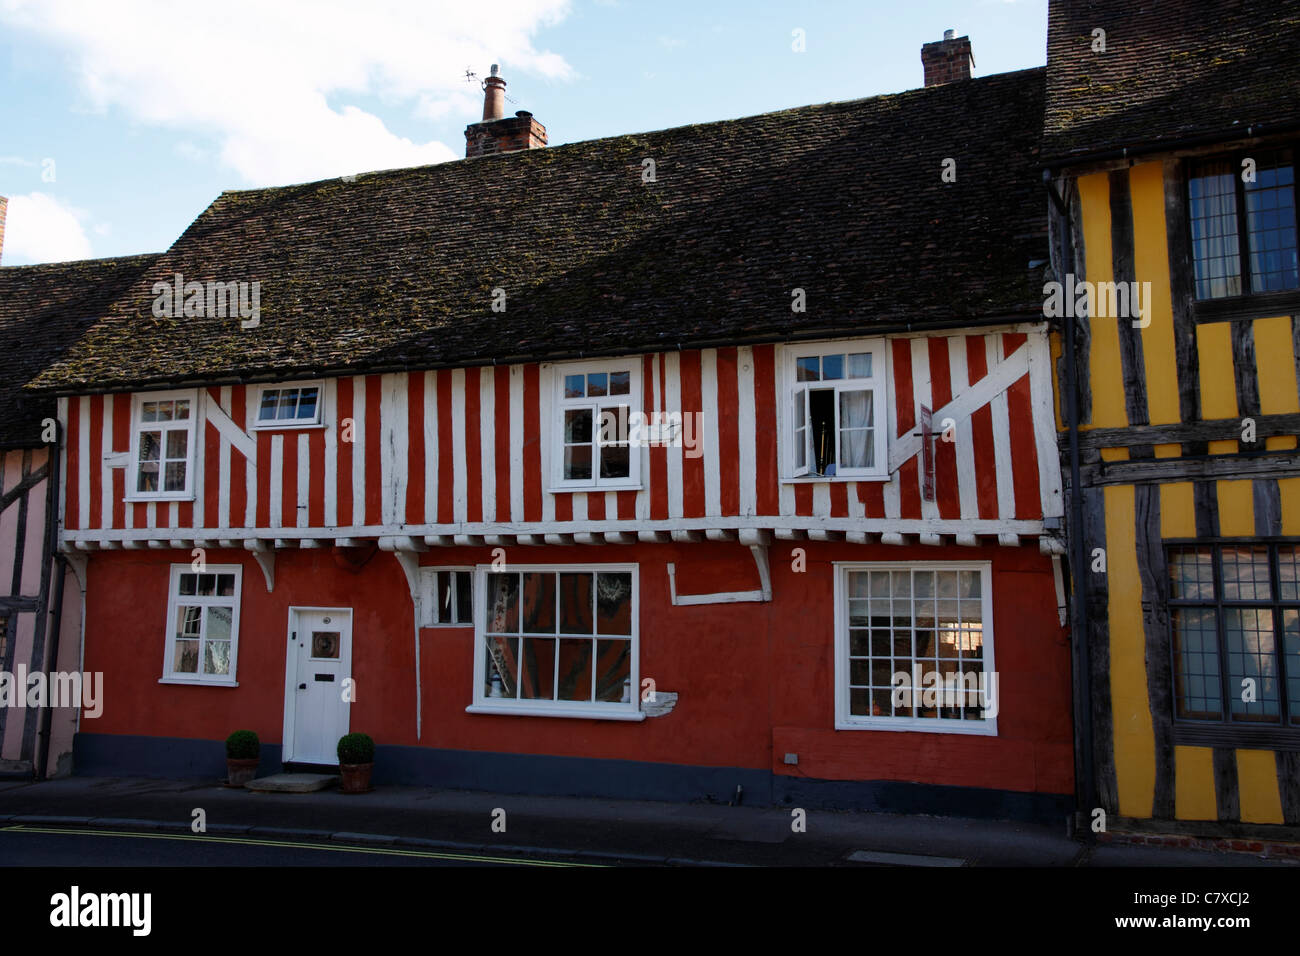 Typical timber framed building in Lavenham Suffolk - Stock Image